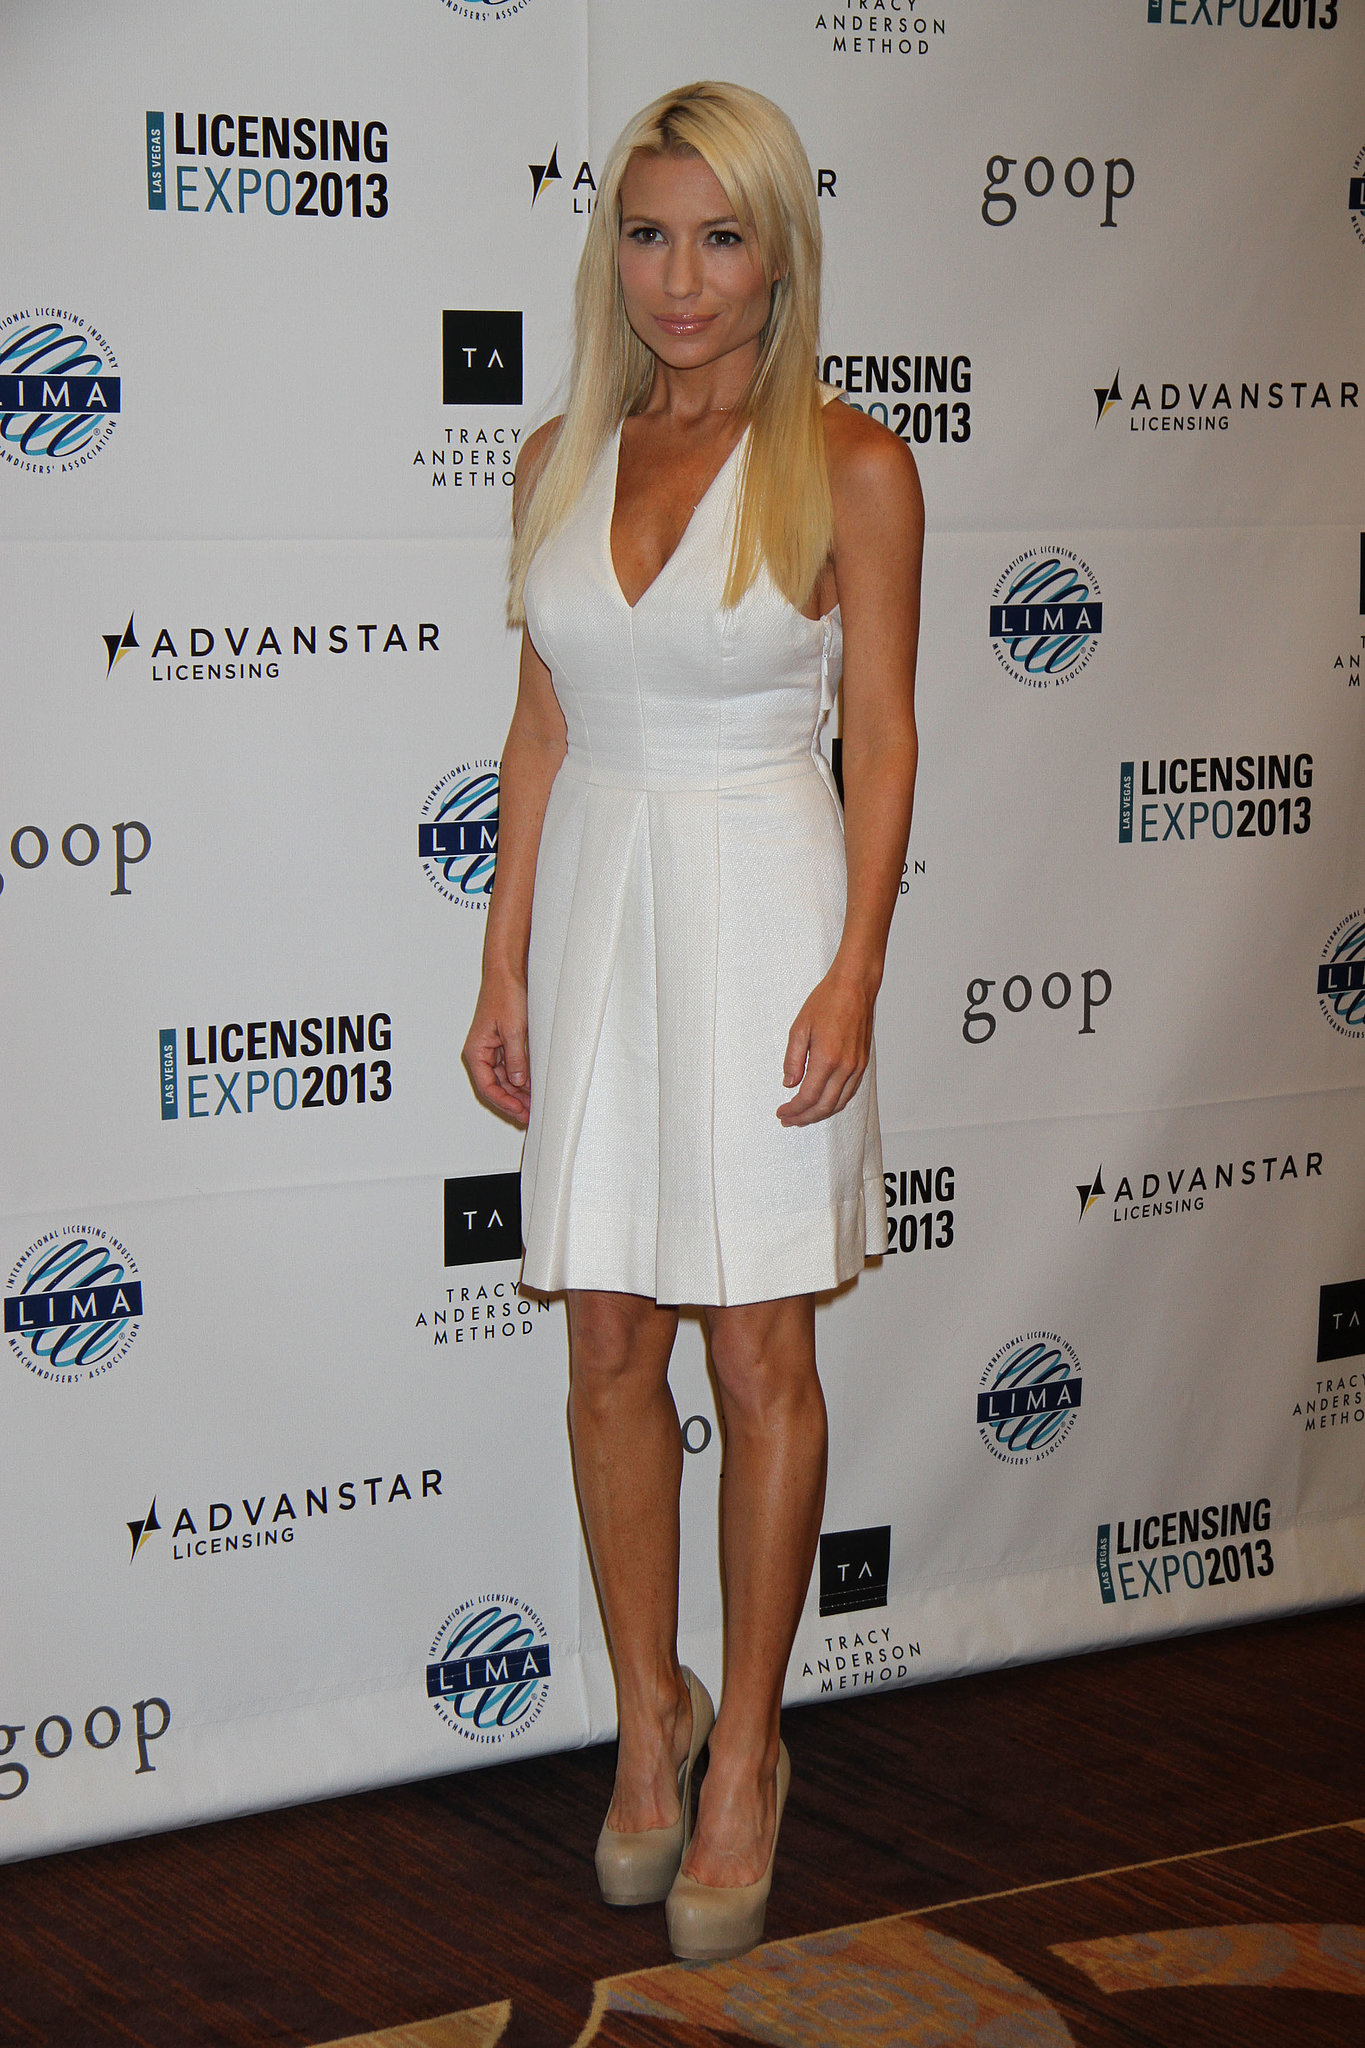 tracy wore a white dress and neutral colored